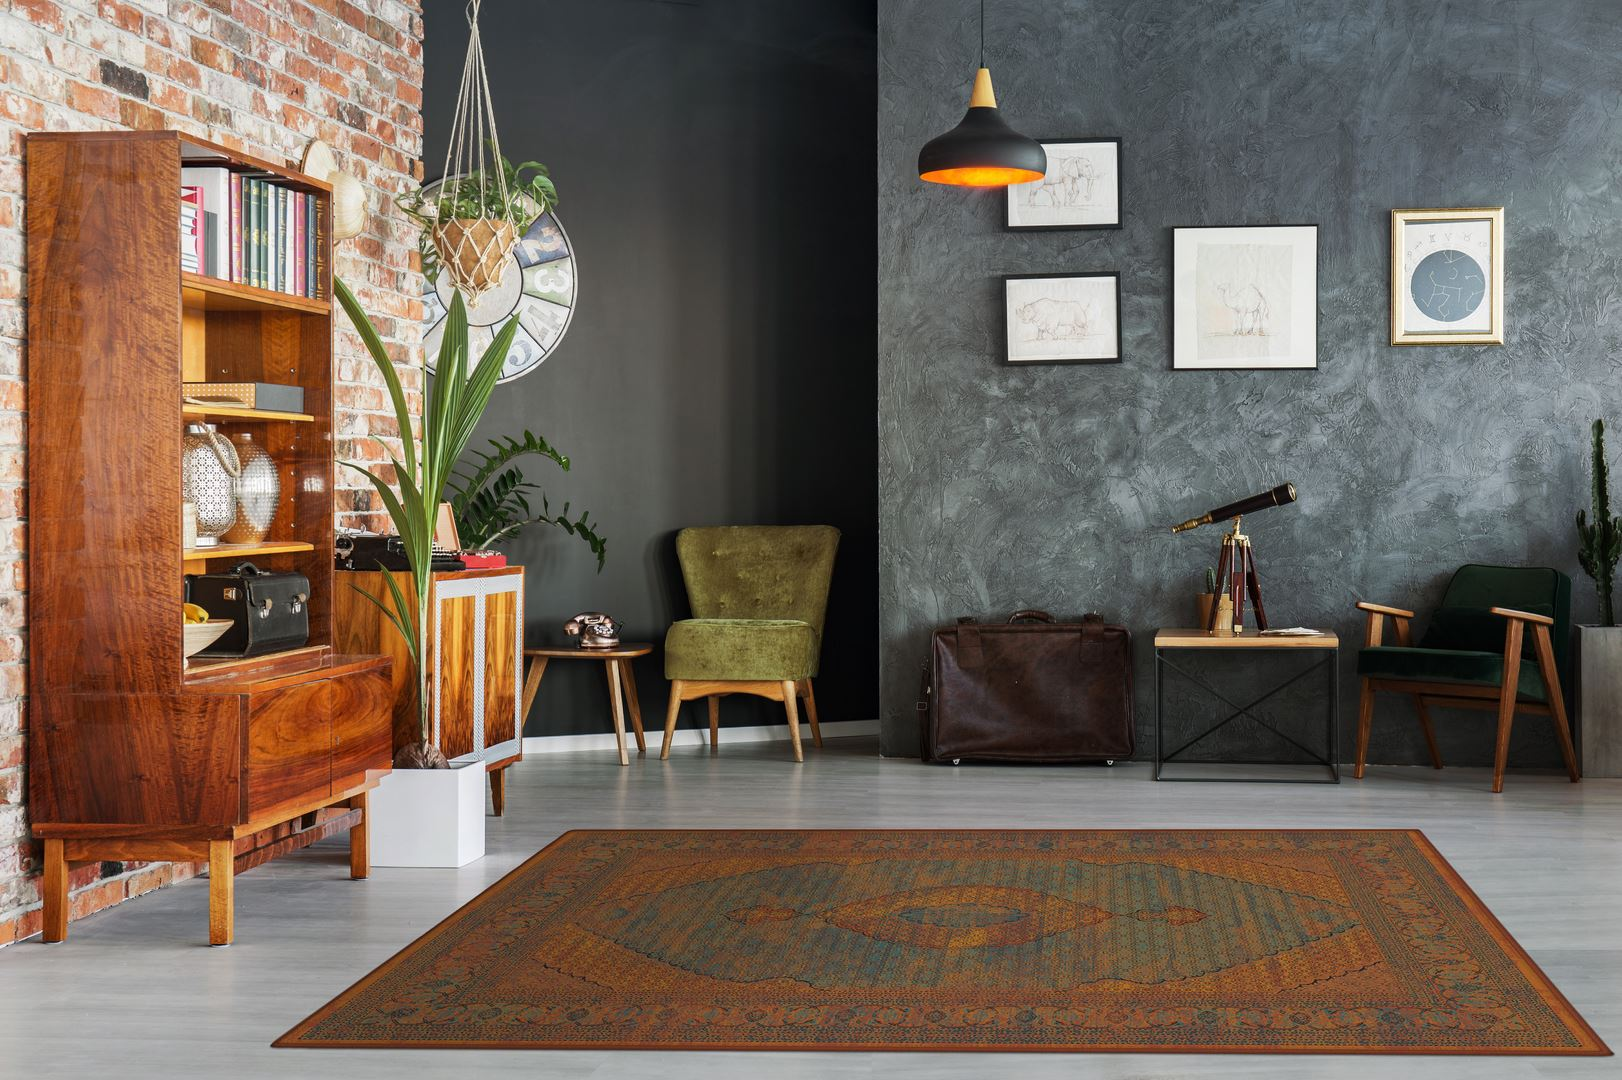 Modernly designed apartment interior with stylish furniture